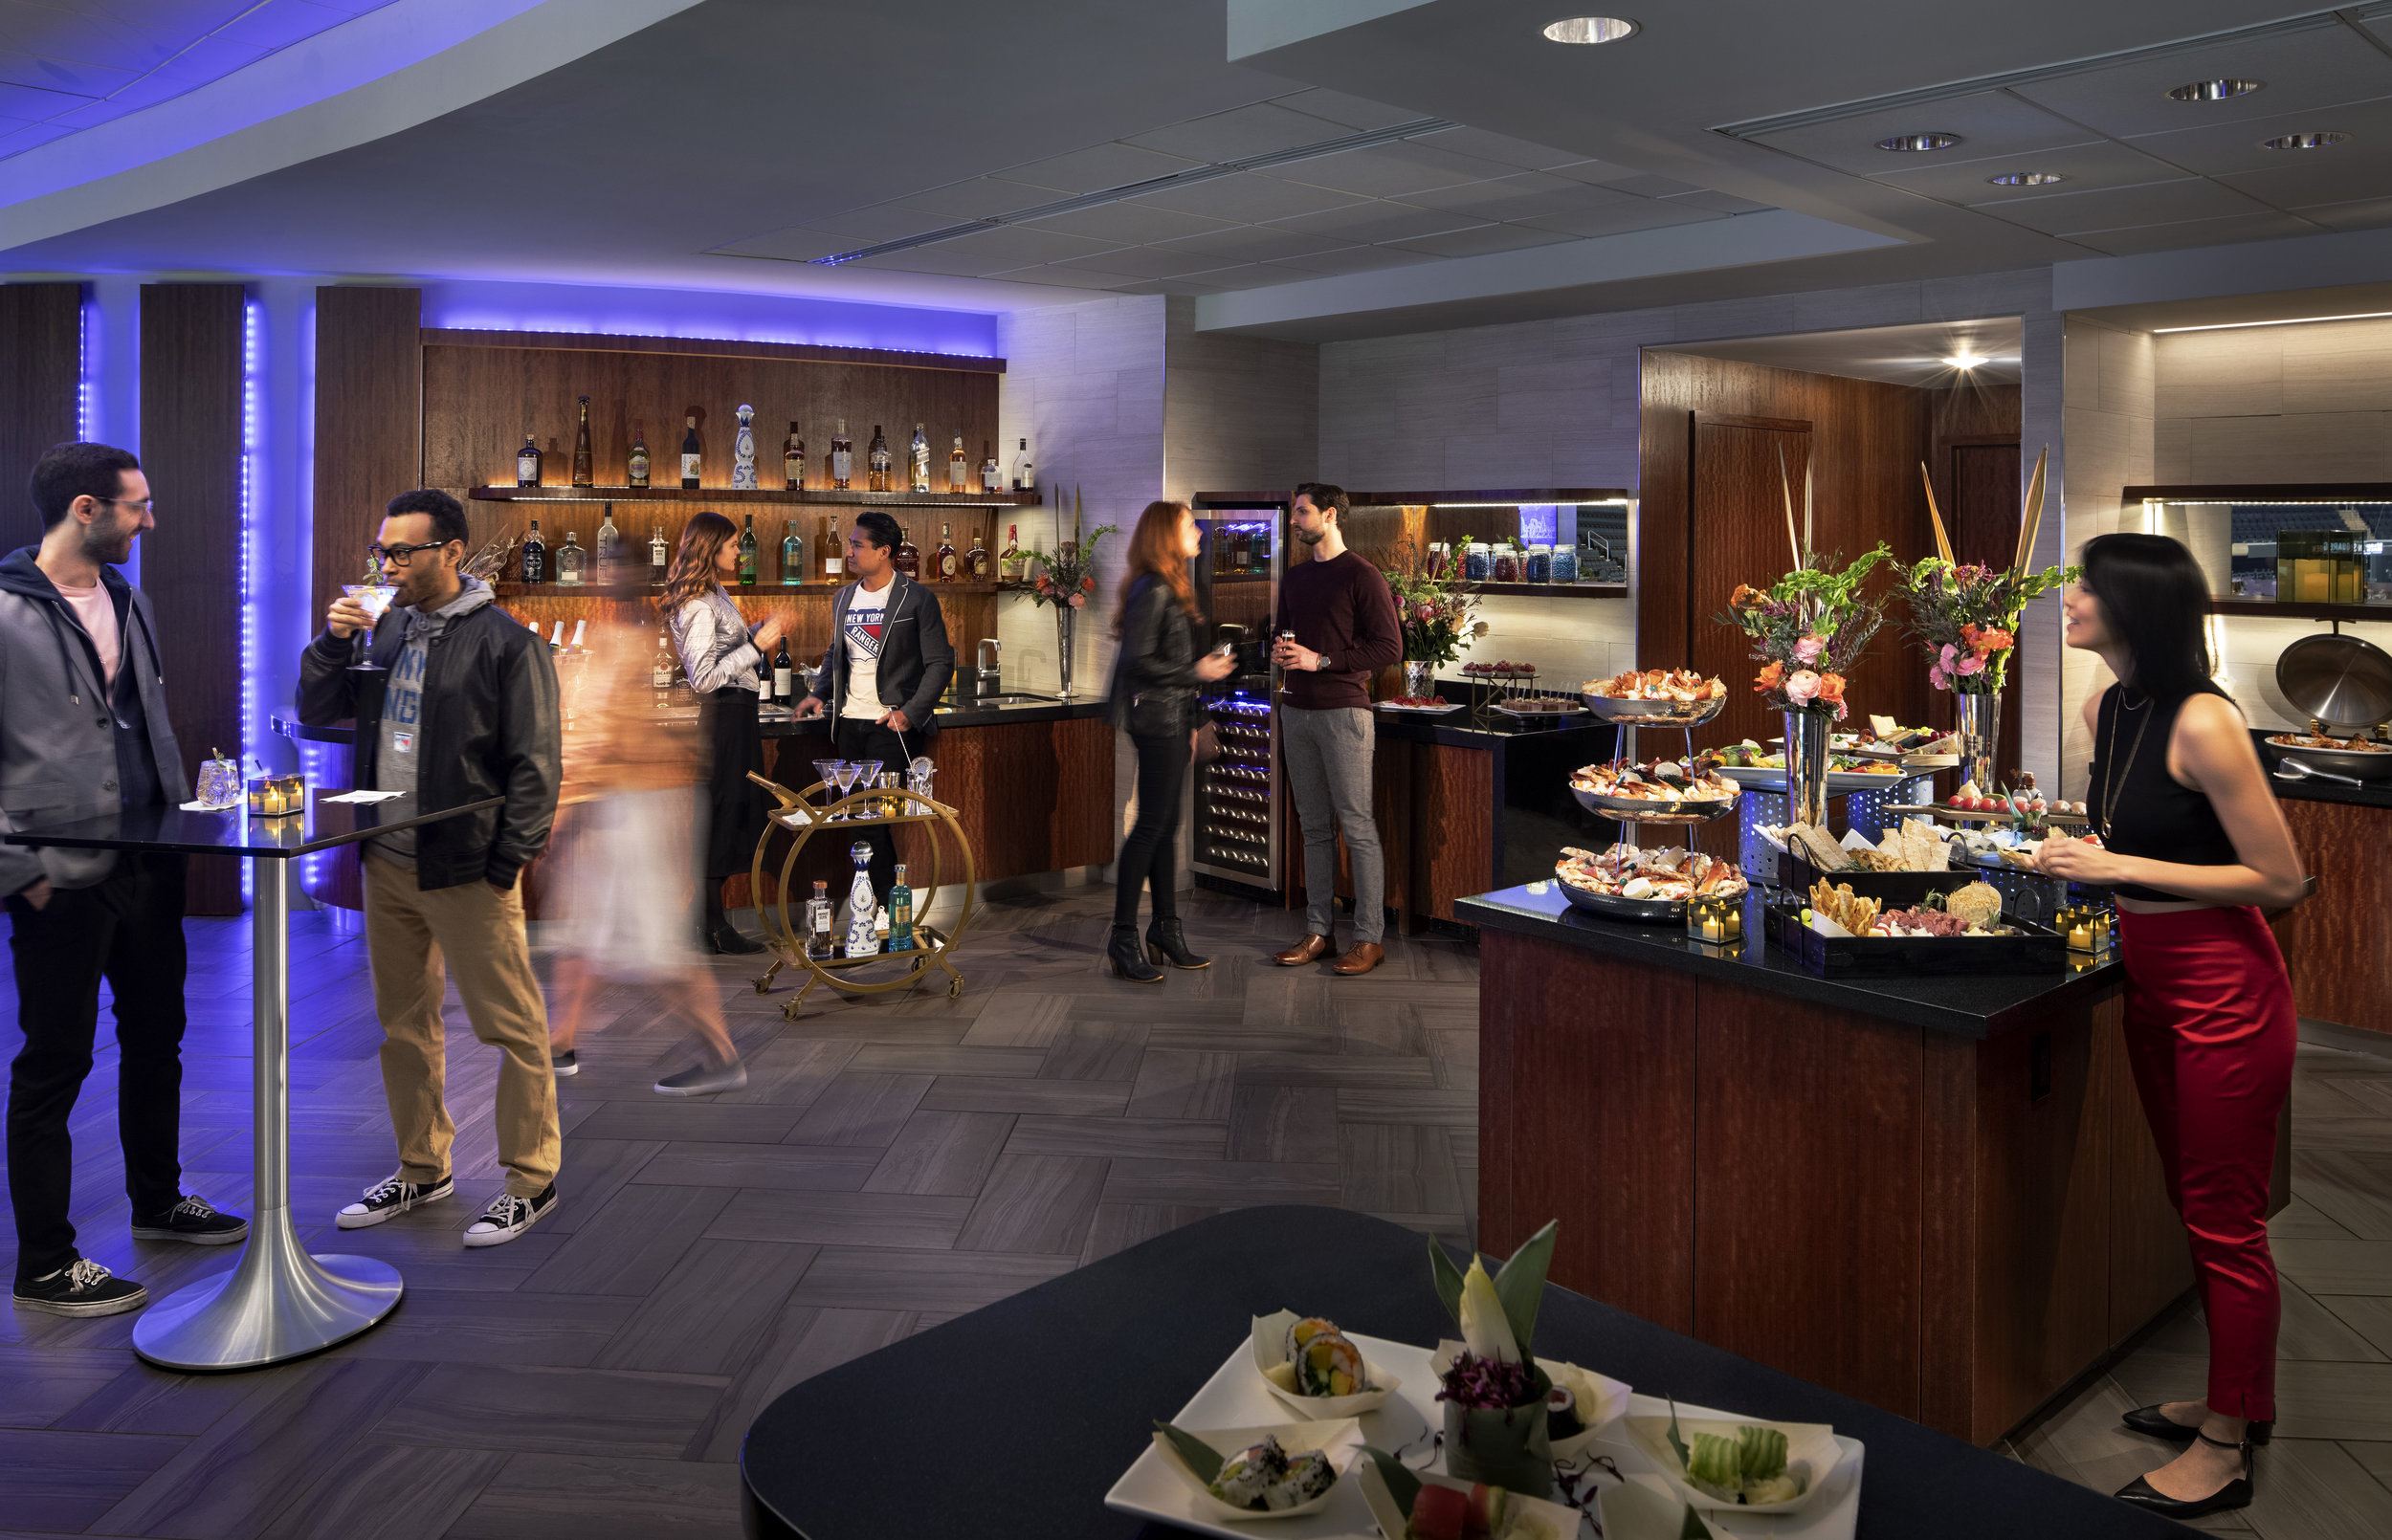 SUITES, LOUNGES, VIP - Our premium hospitality spaces bring you right to the heart of the action. You'll be perfectly placed to witness history as it happens.Call for Premium Experience Offering 212.631.5247